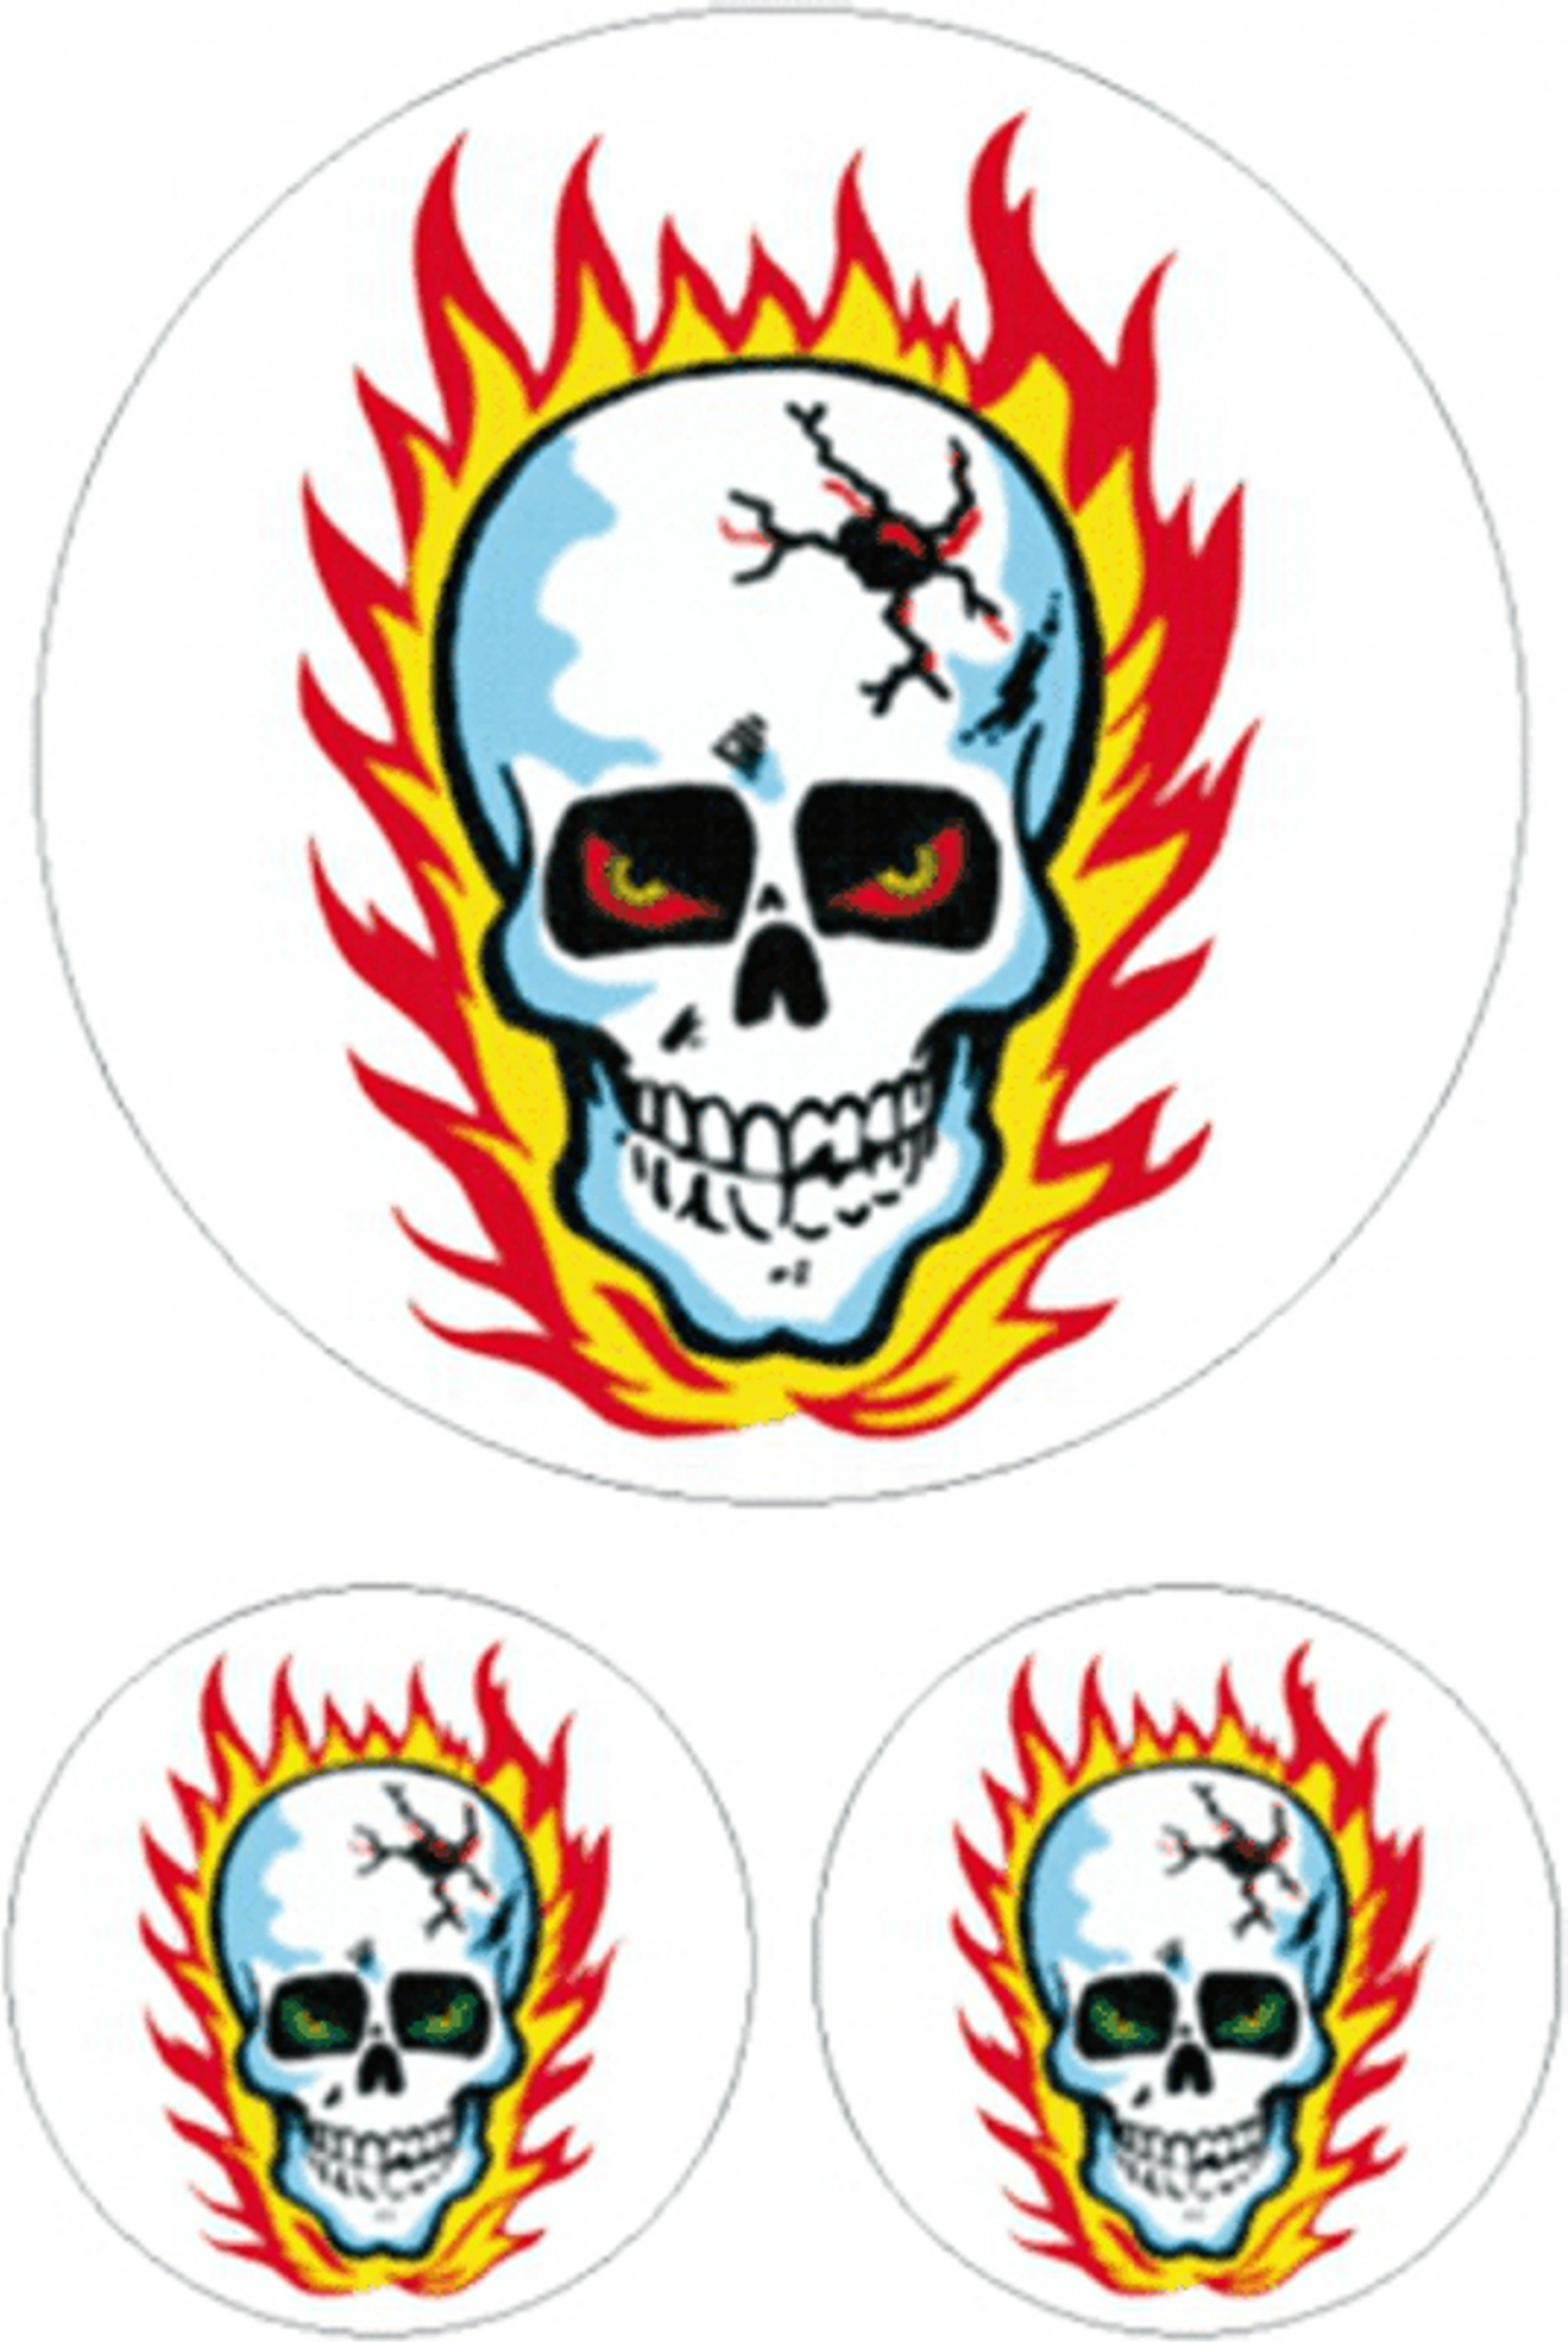 Sticker Skull with flames 3 pieces 160 x 120 mm – Bild 1